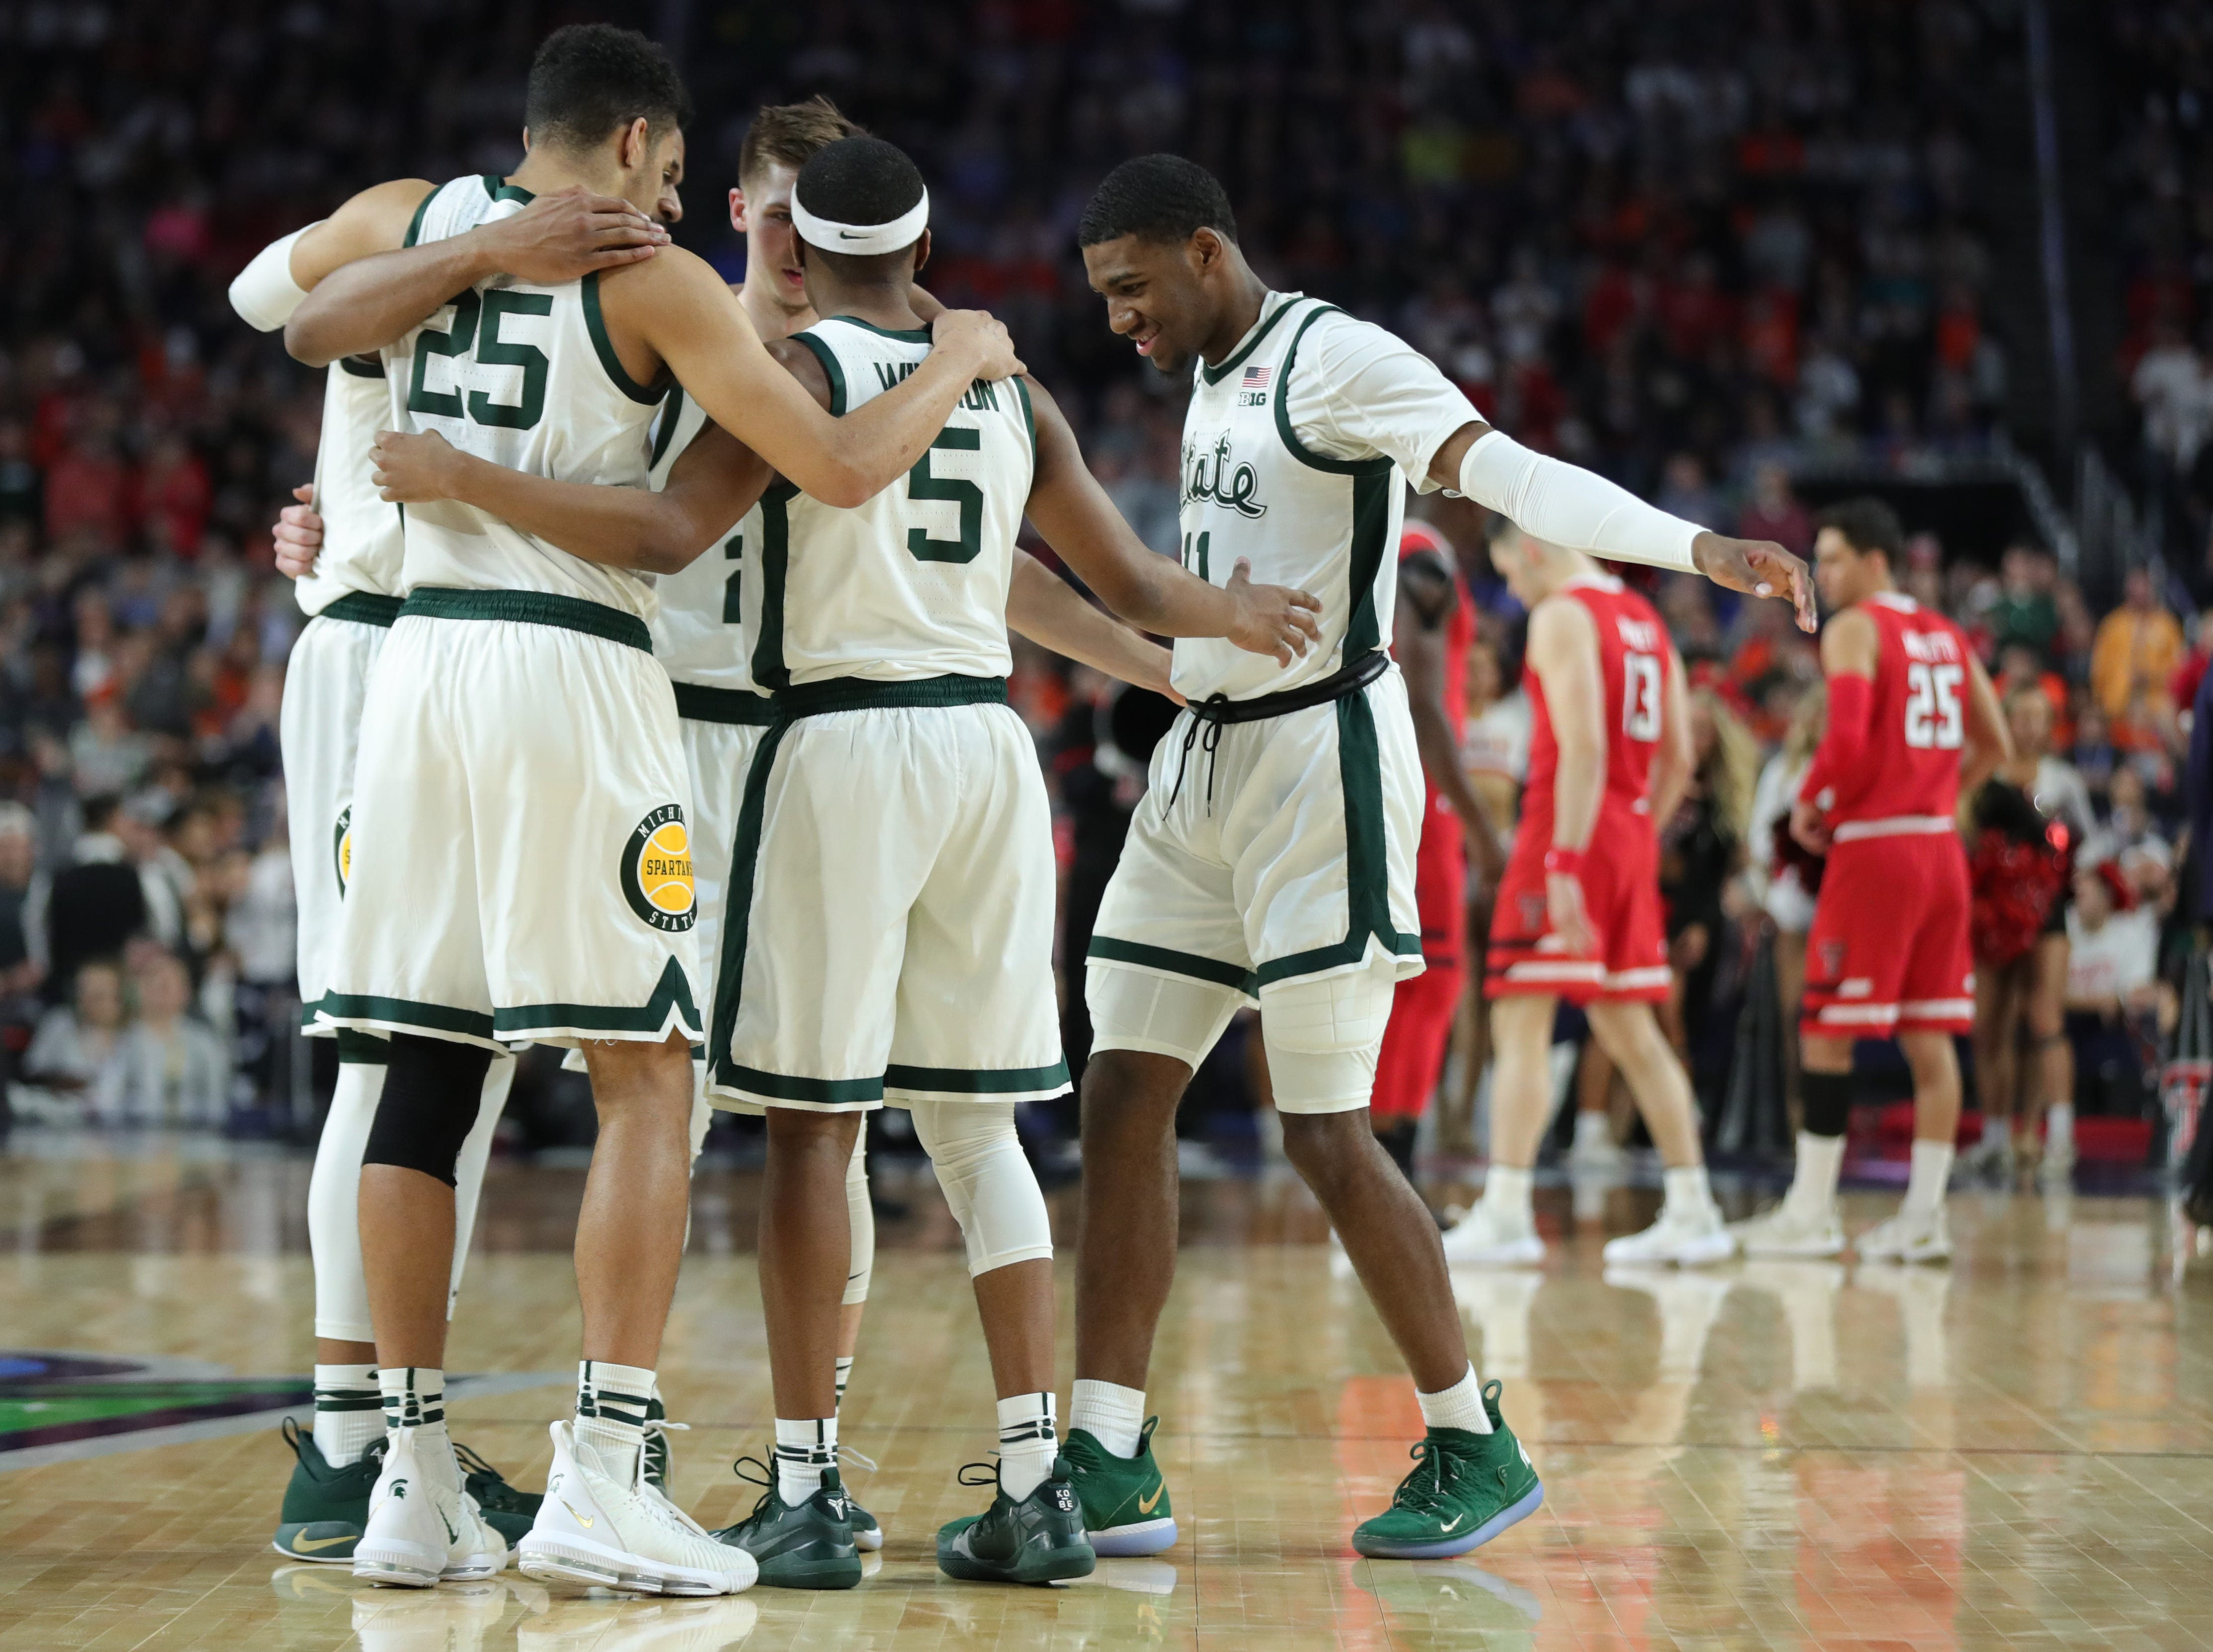 Michigan State;s starters join for a huddle before tip off against Texas Tech in the Final Four at U.S. Bank Stadium in Minneapolis, Minnesota on Saturday, April 06, 2019.